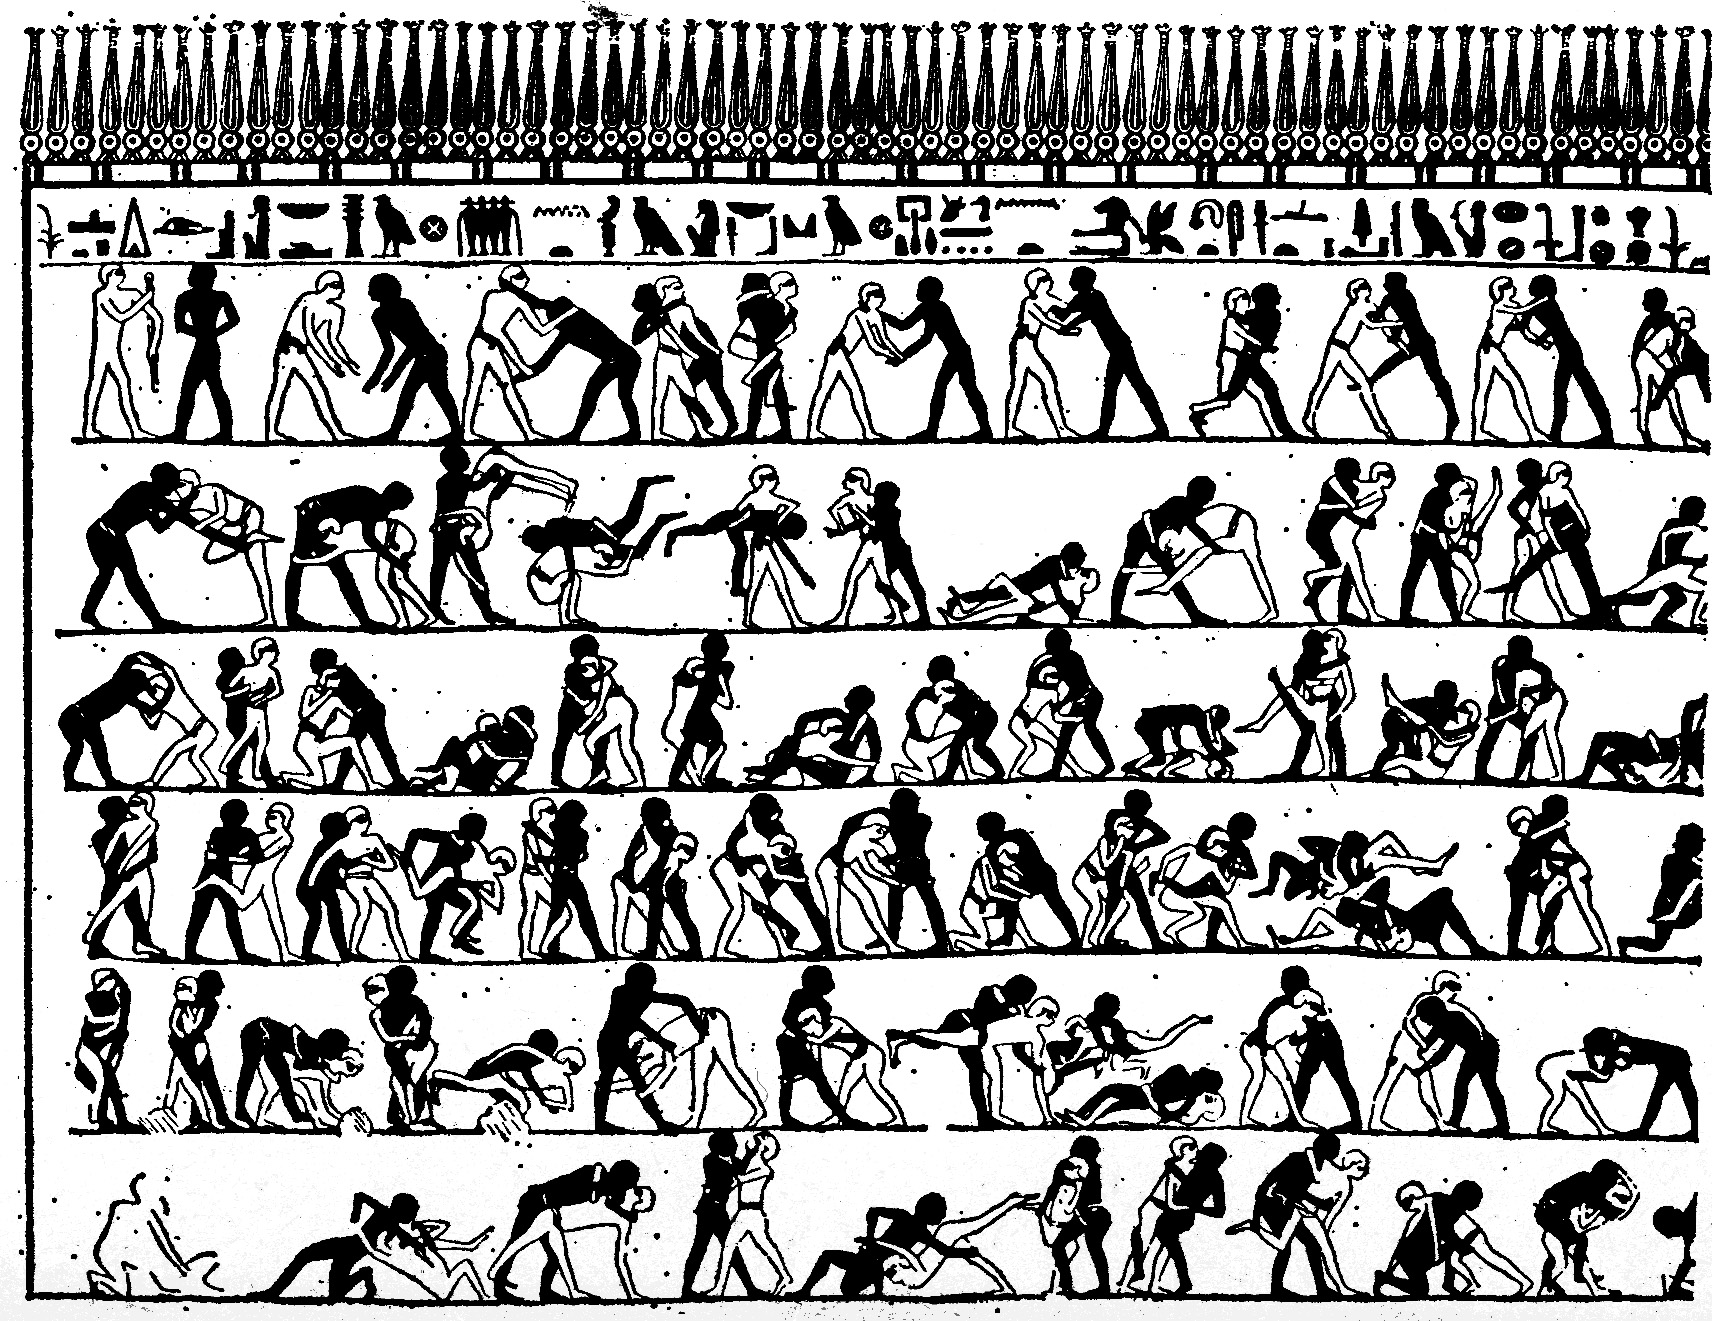 history of animation wikipedia Events in 1970 in America an egyptian burial chamber mural approximately 4000 years old showing wrestlers in action